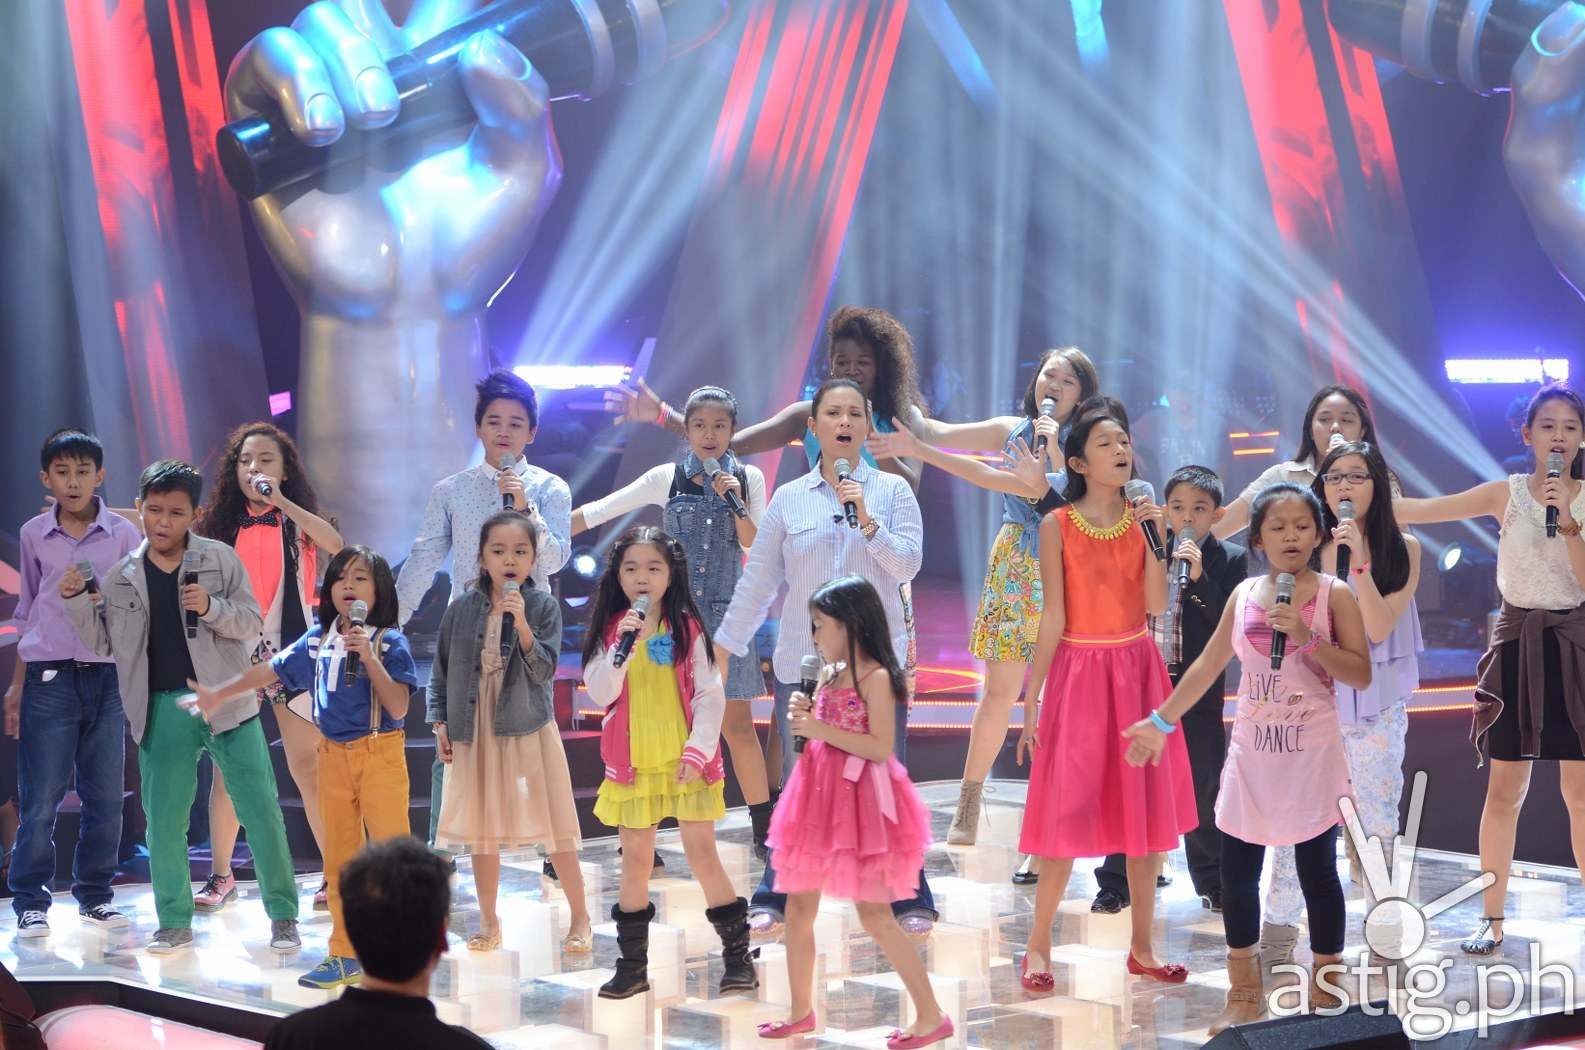 Lea Salonga with her young artists in 'The Voice Kids'